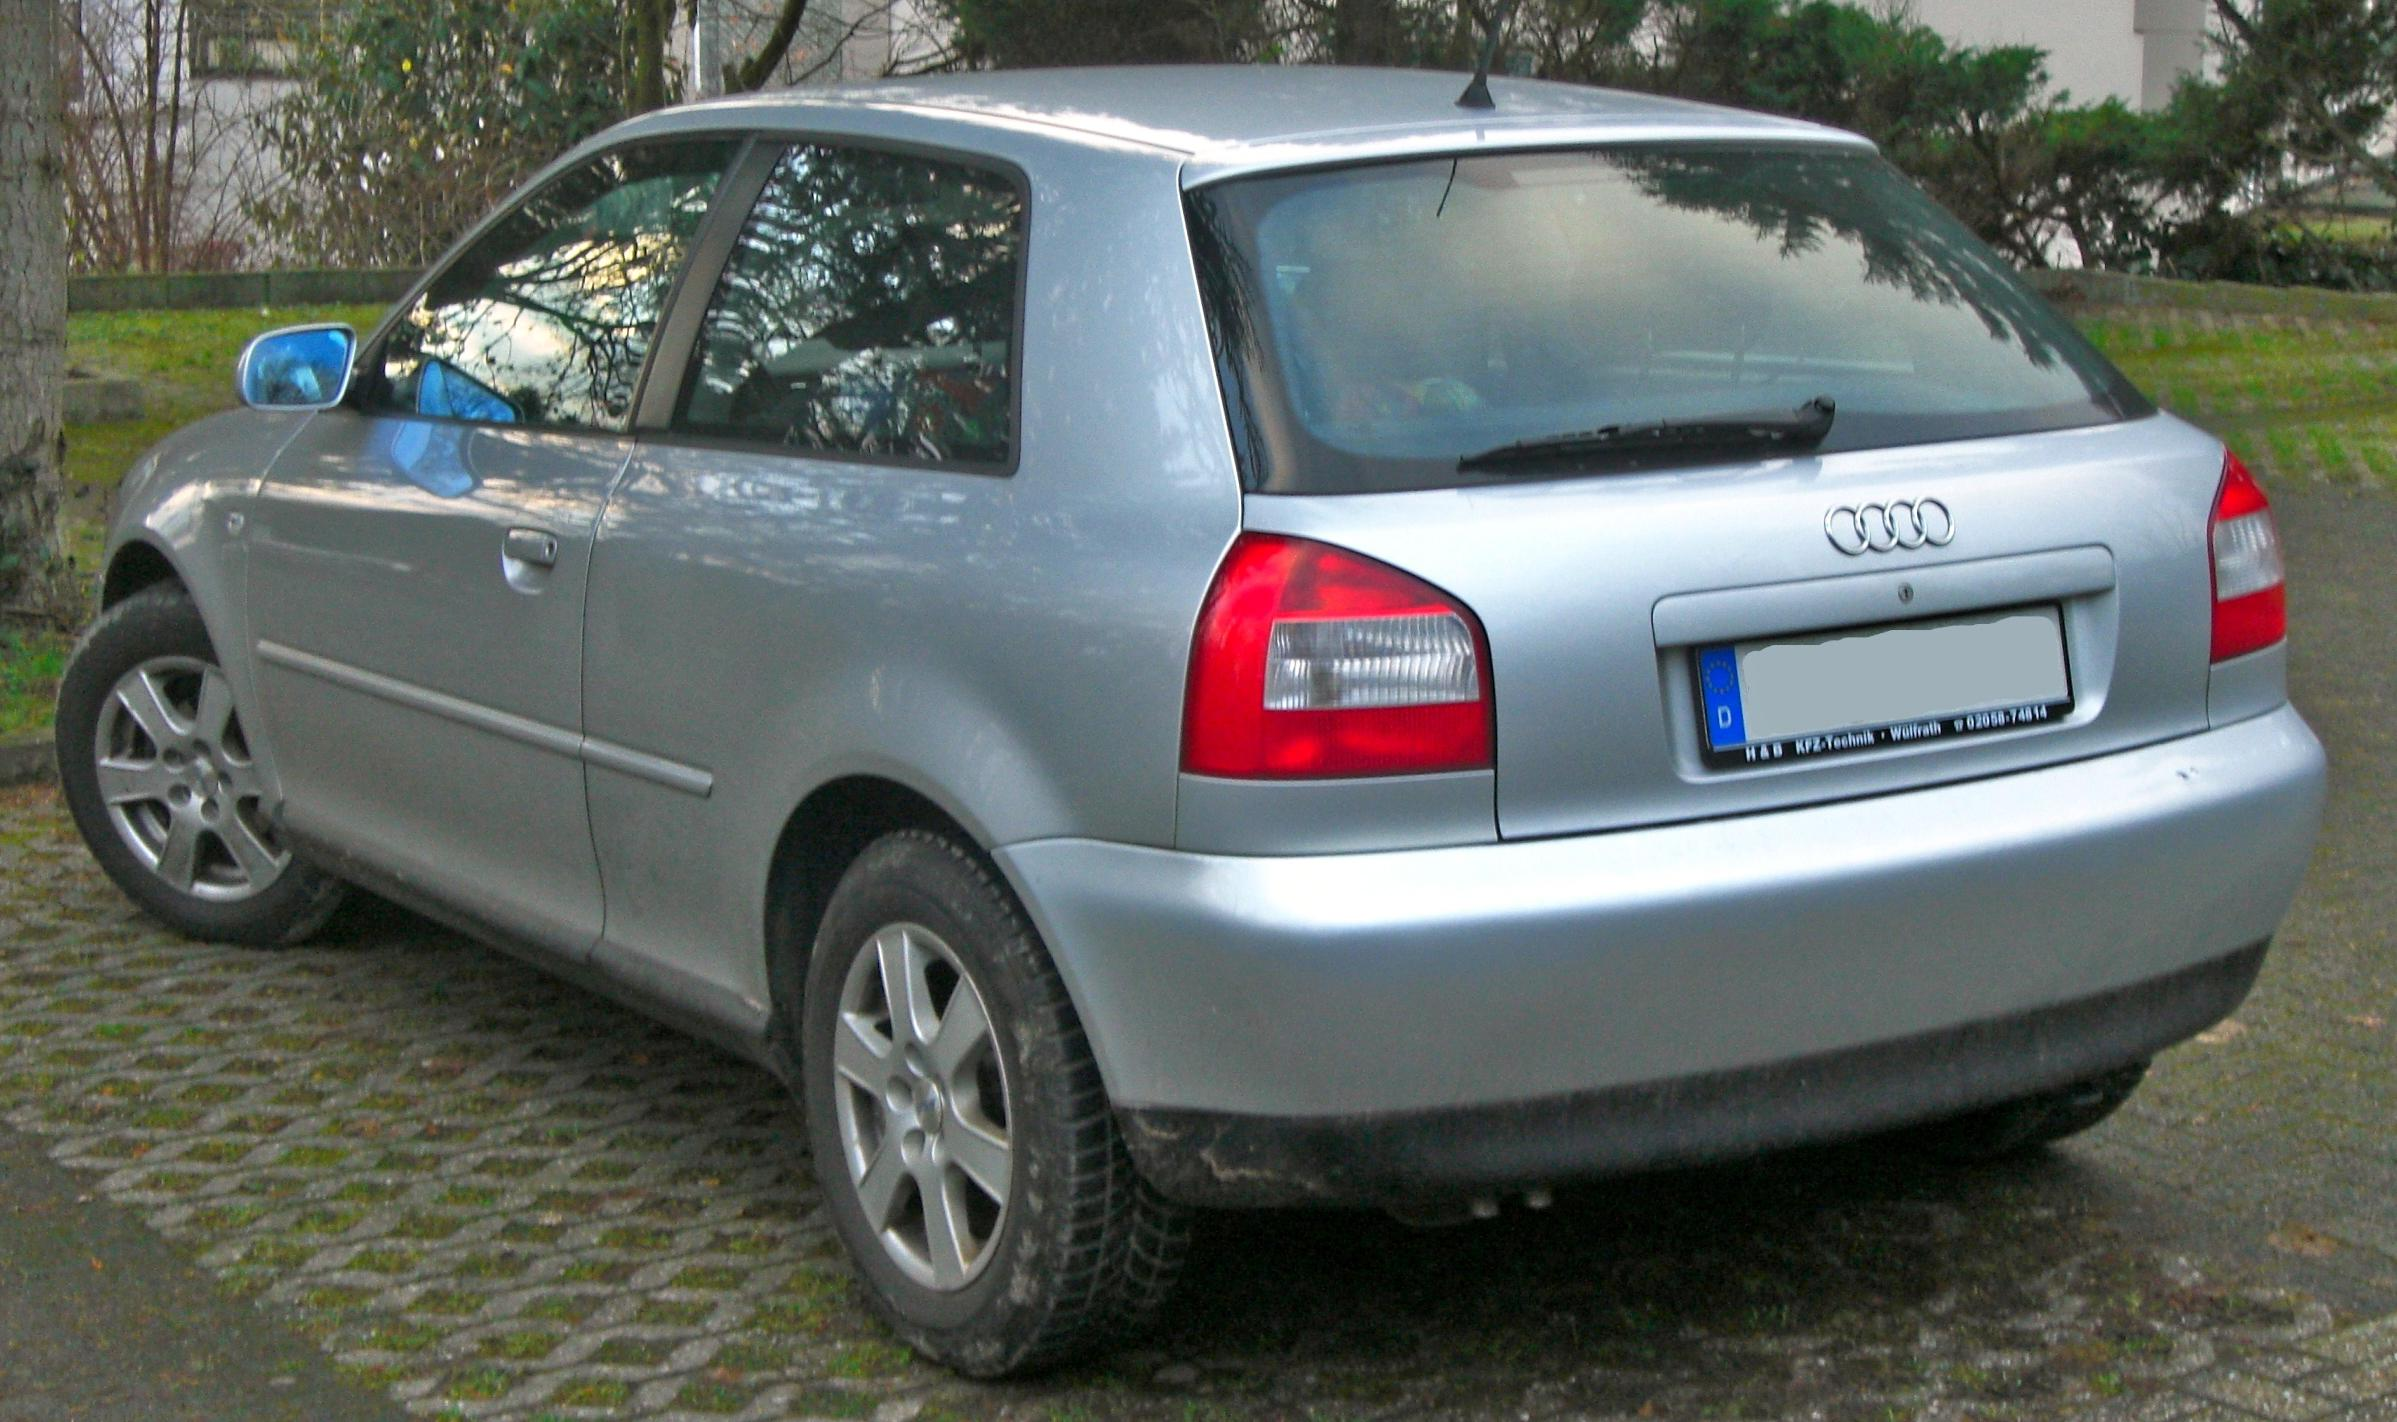 file audi a3 i facelift 2000 2003 rear mj jpg wikimedia commons. Black Bedroom Furniture Sets. Home Design Ideas